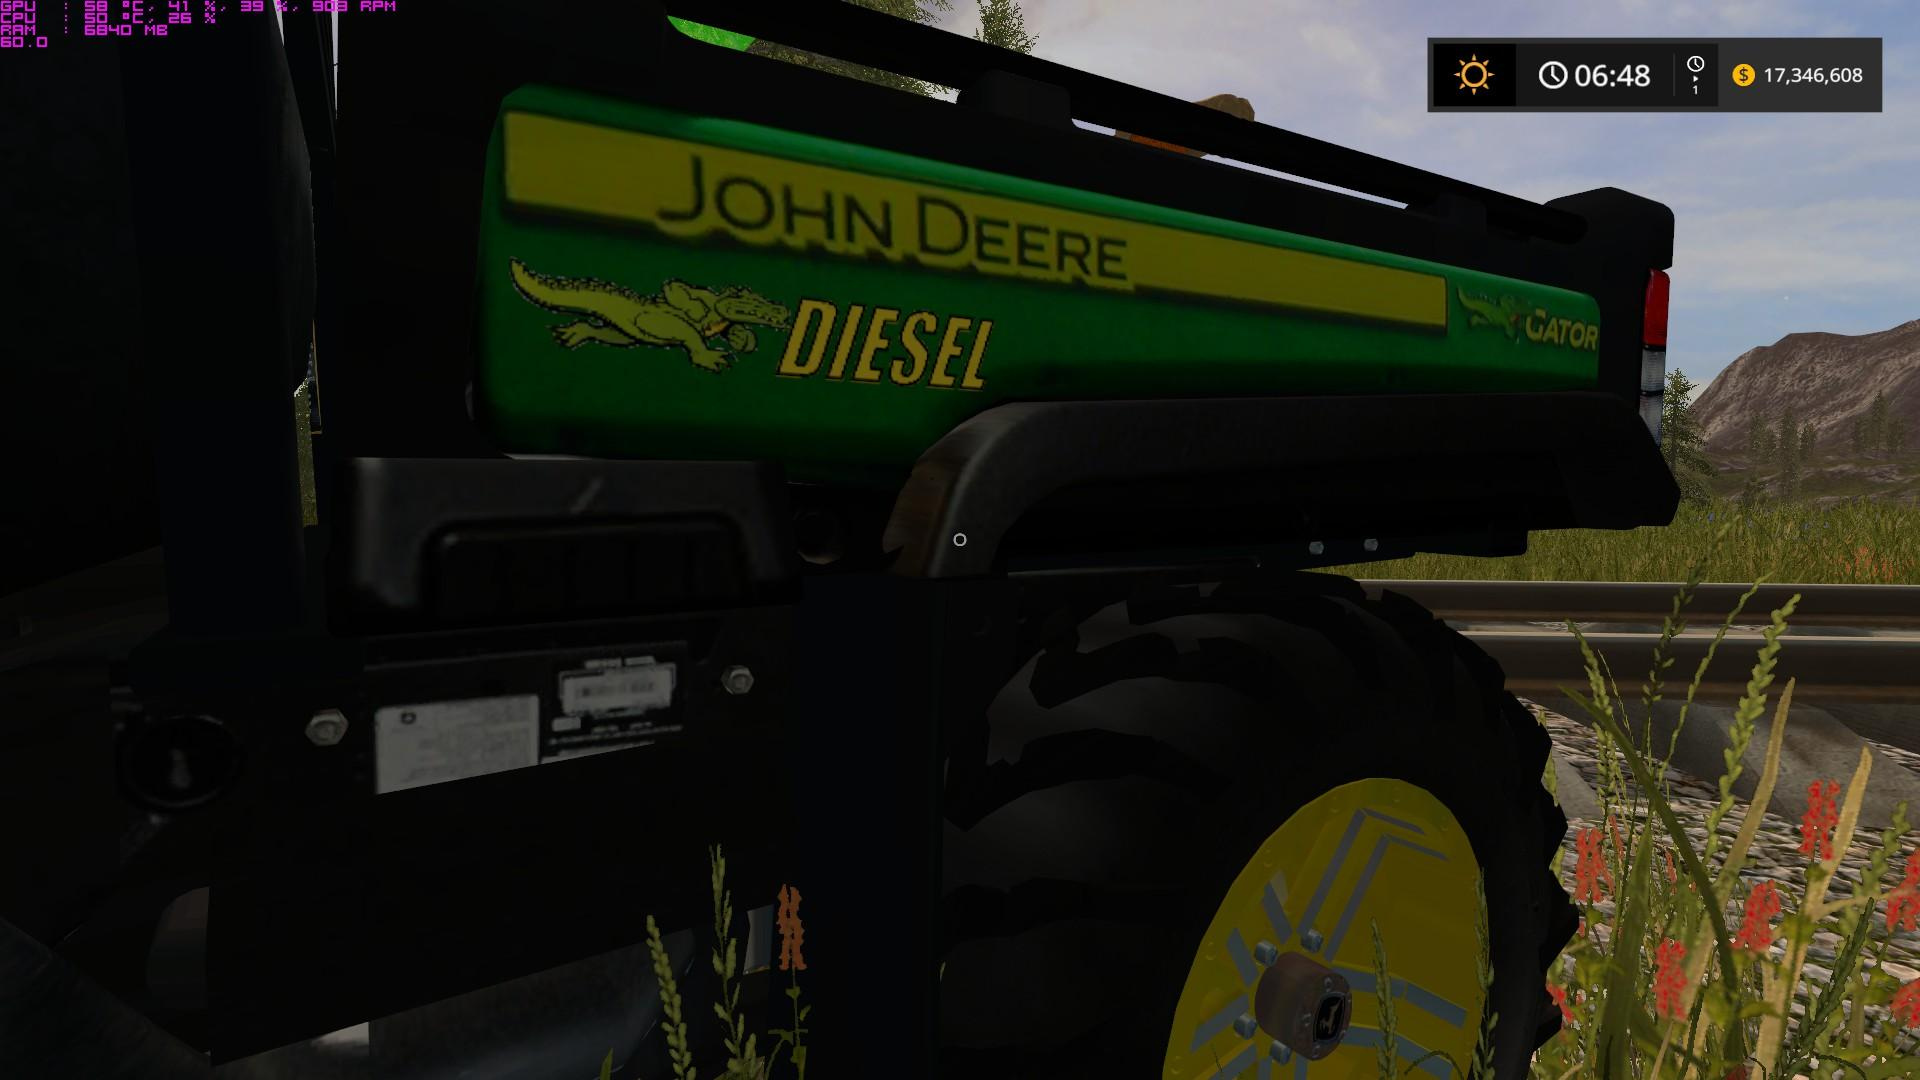 John Deere Gator Top Speed The Best Deer Of 2018 Hpx 4x4 Wiring Diagram Fs17 Sel Farming Simulator 2019 2017